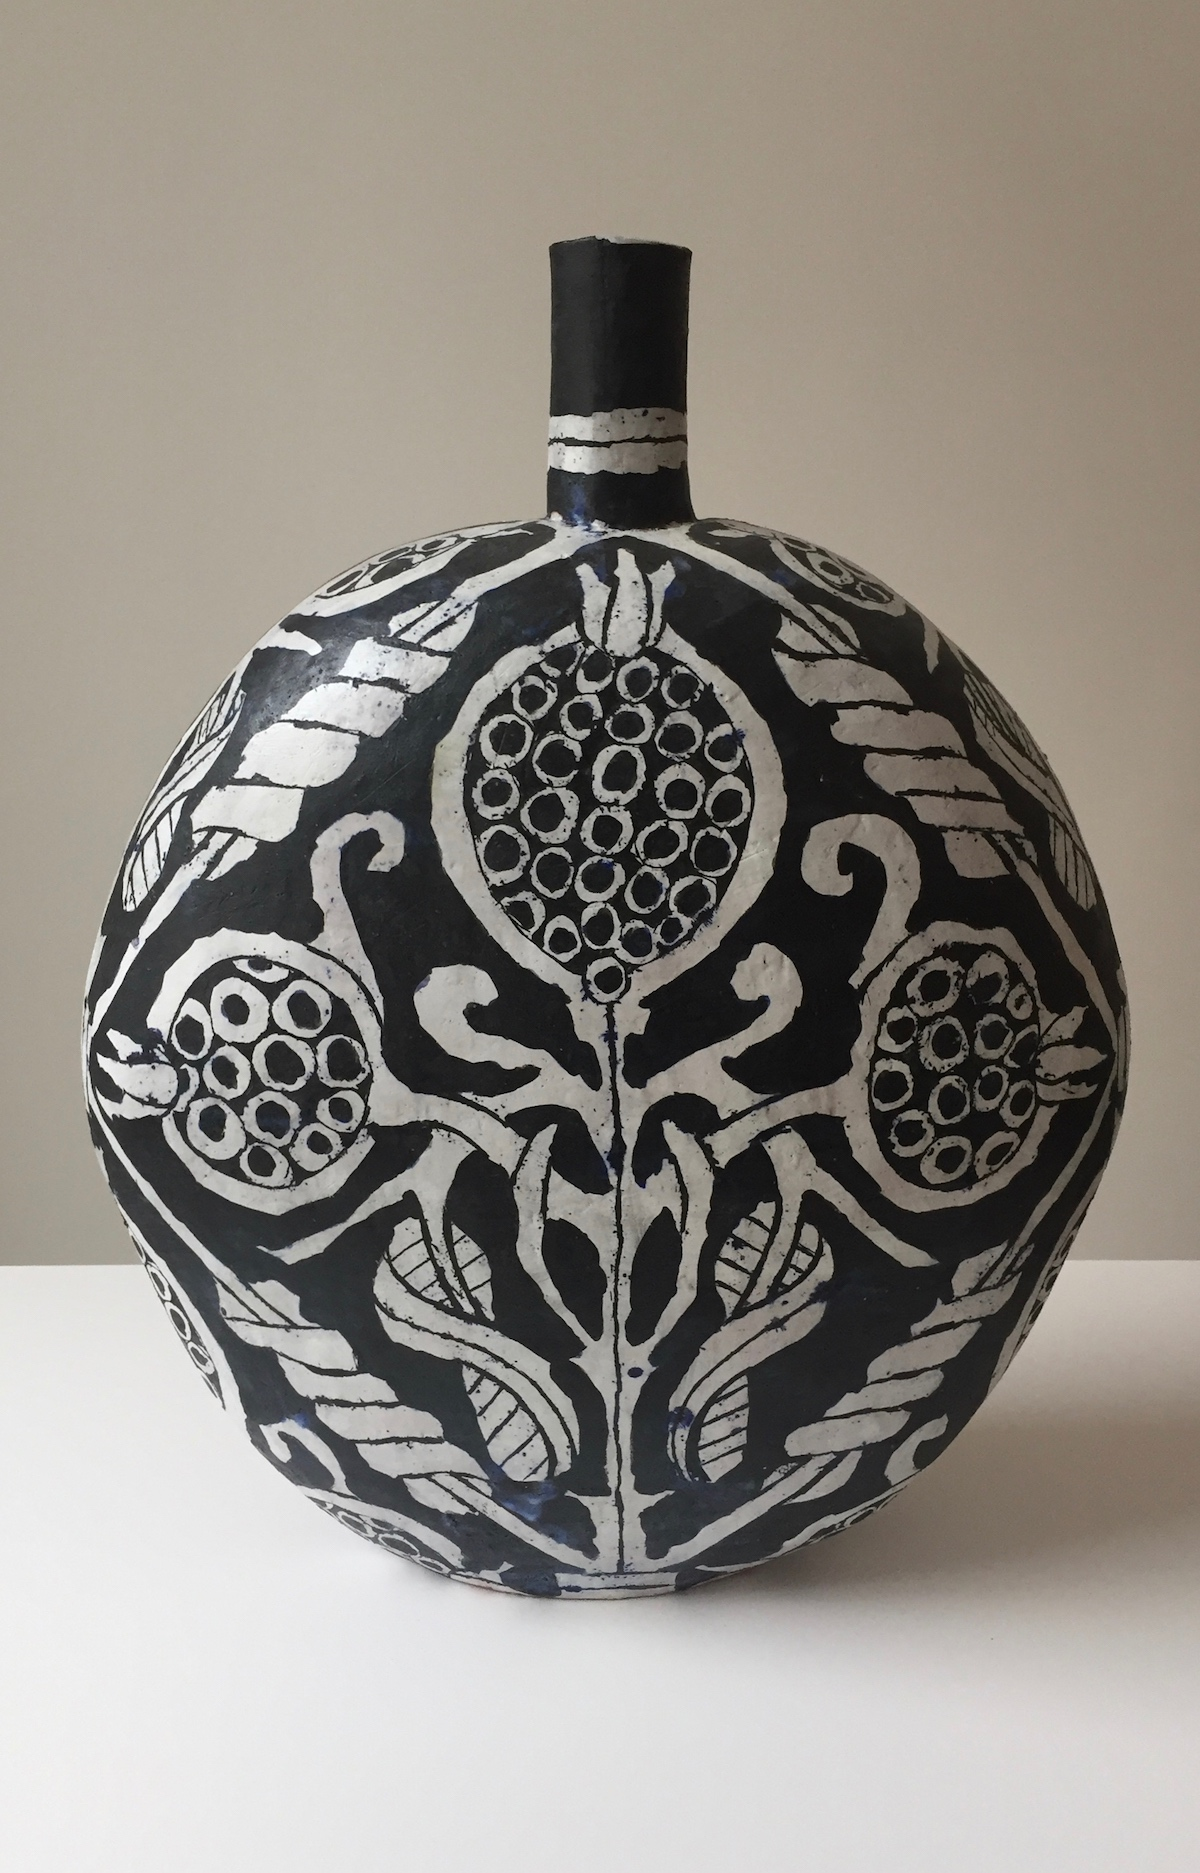 Large Pineapple Flask, 2016